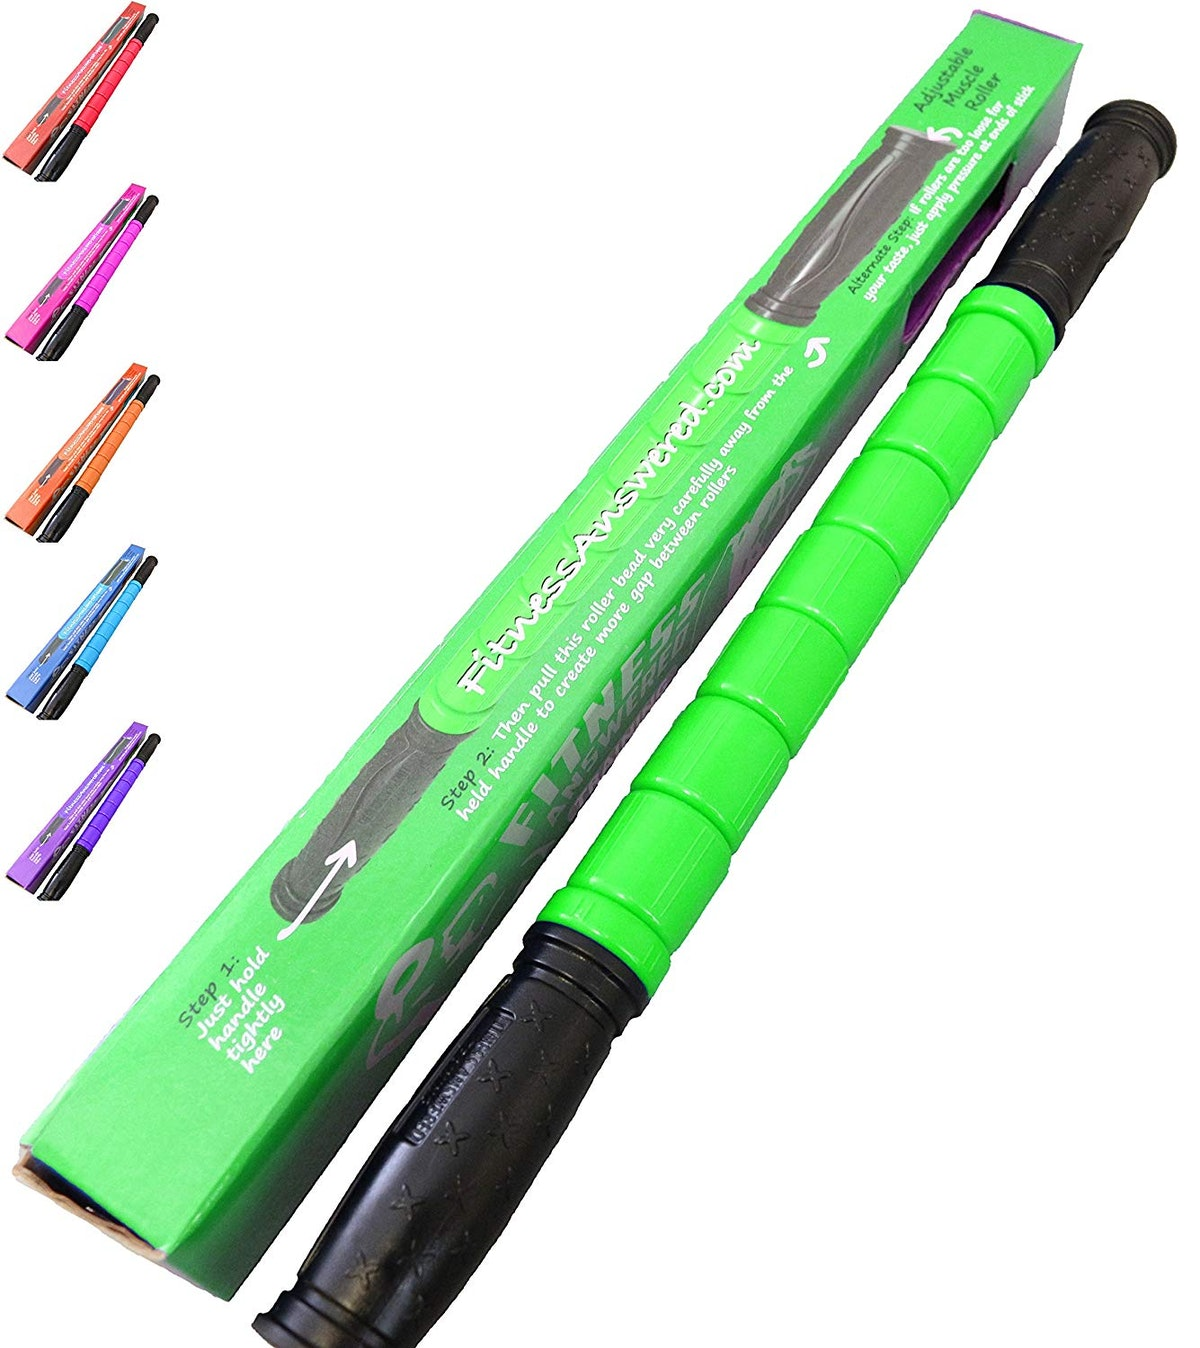 The Muscle Stick Original Muscle Roller by Fitness Answered Training